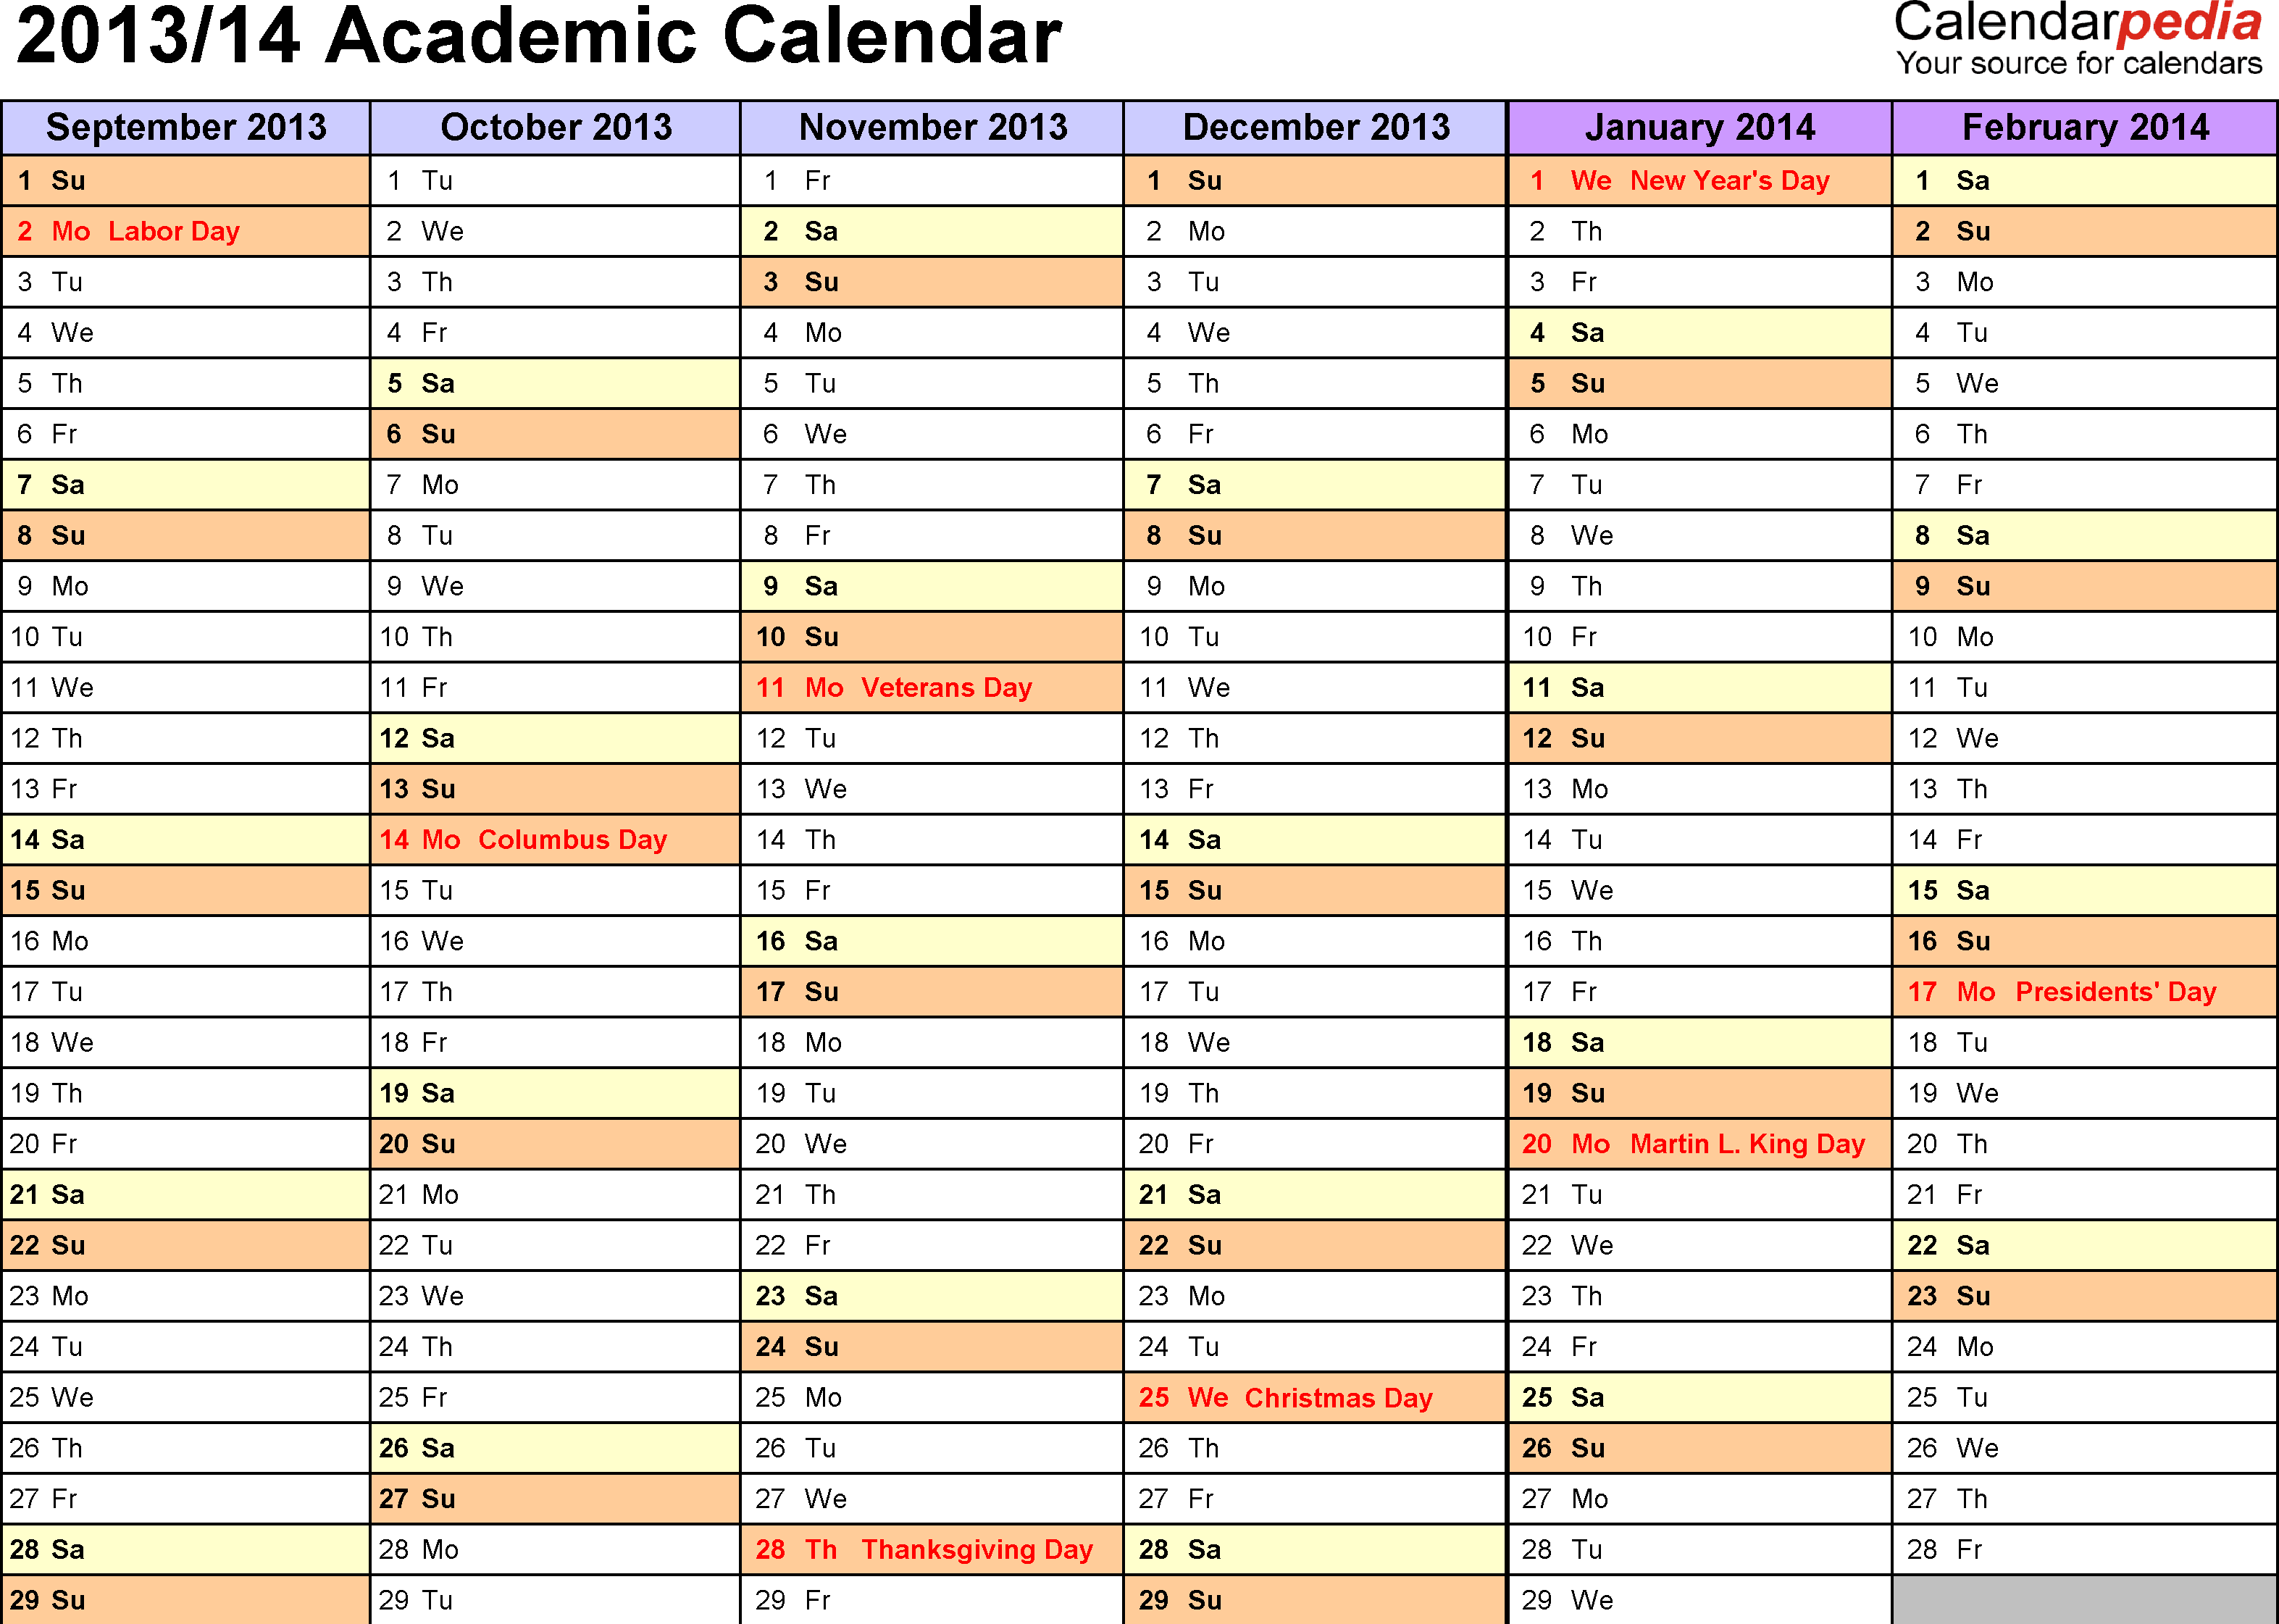 Template 2: Academic calendar 2013/14 for Word, landscape orientation, months horizontally, 2 pages